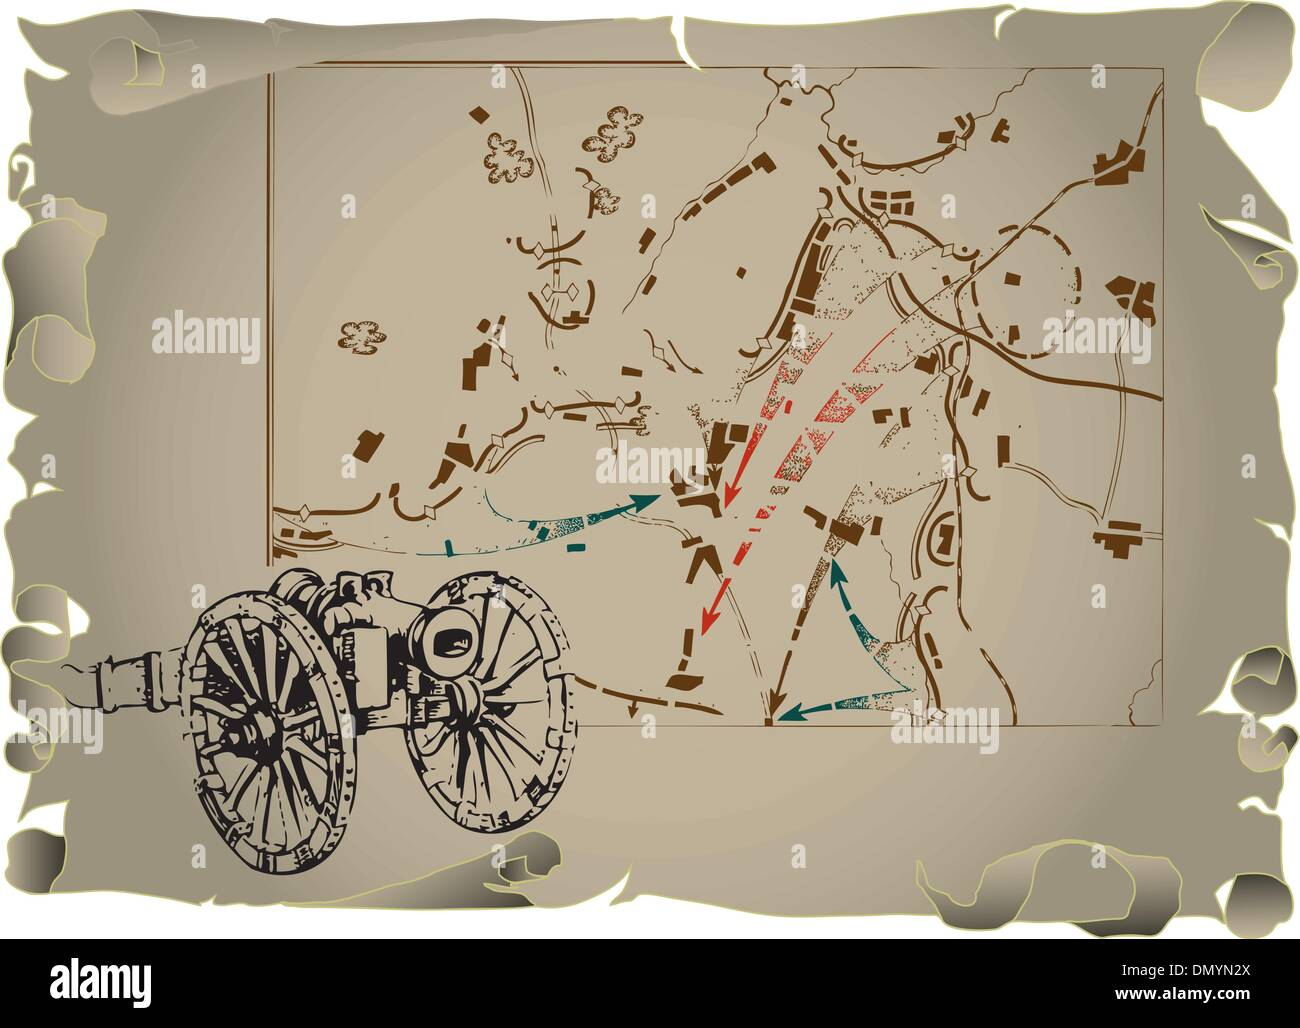 Old map of the battle - Stock Vector